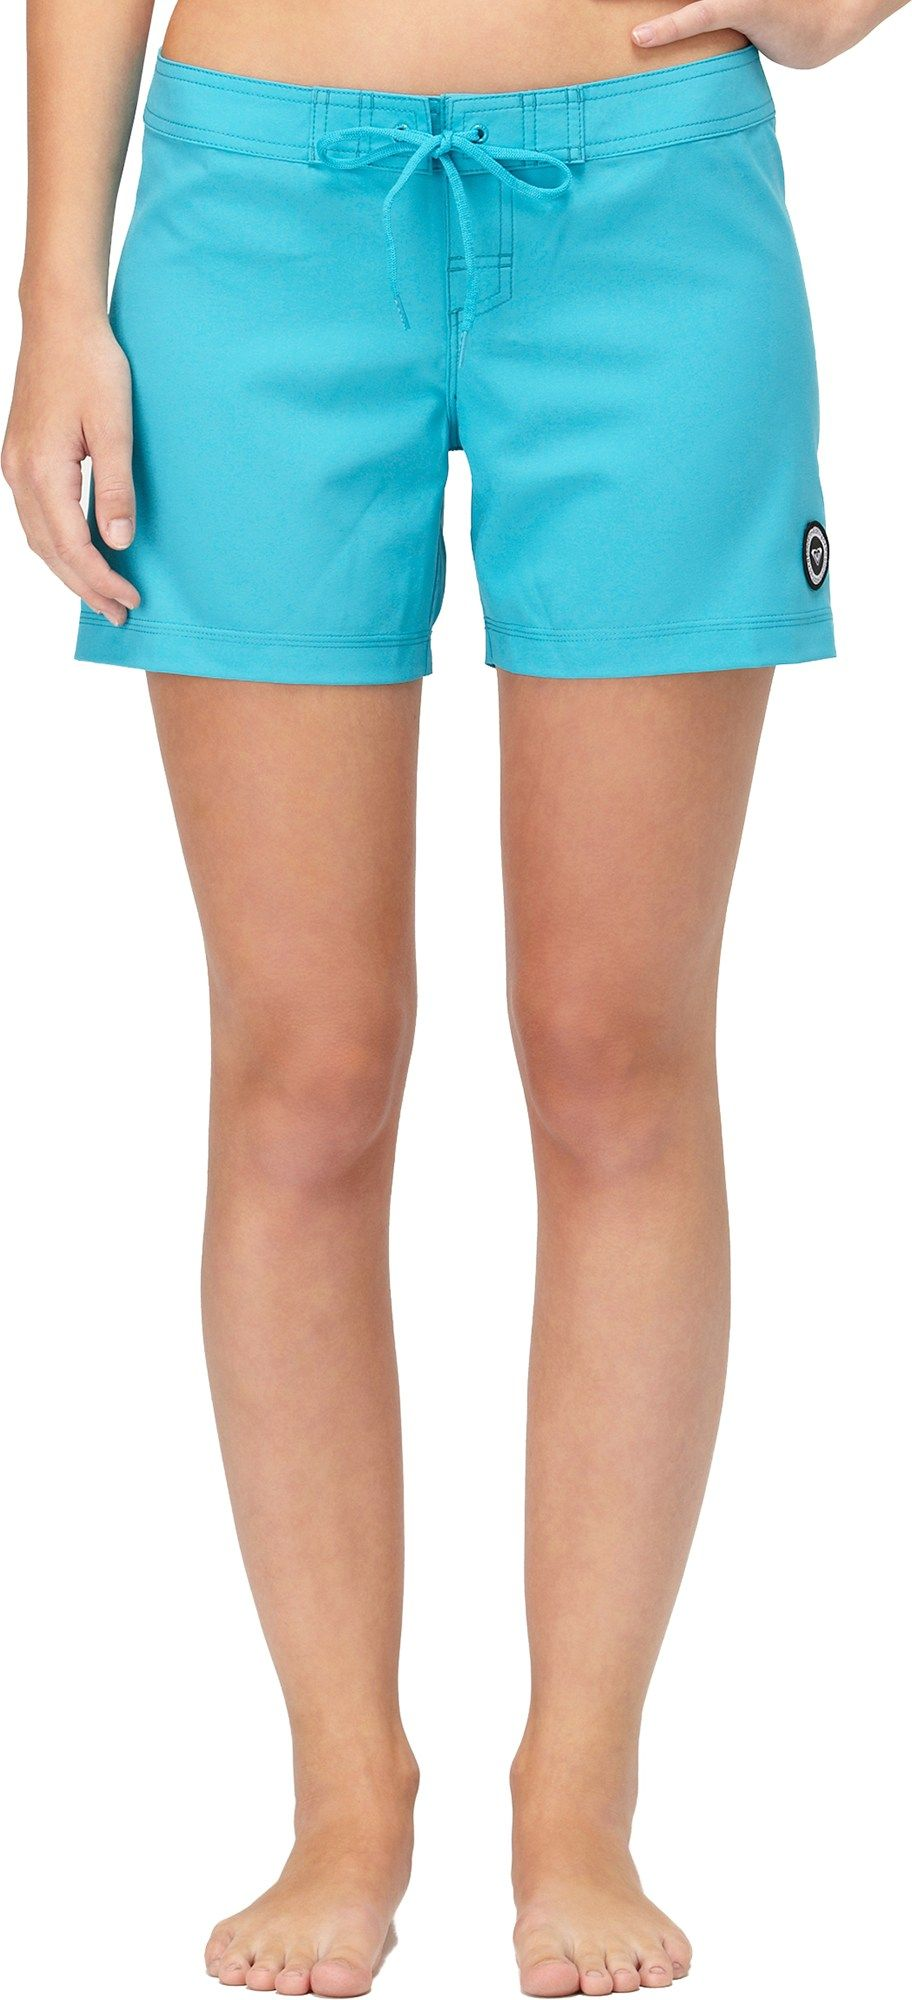 53331d312b Roxy Classic Long Board Shorts - Women's | REI Co-op | Ideas | Board ...